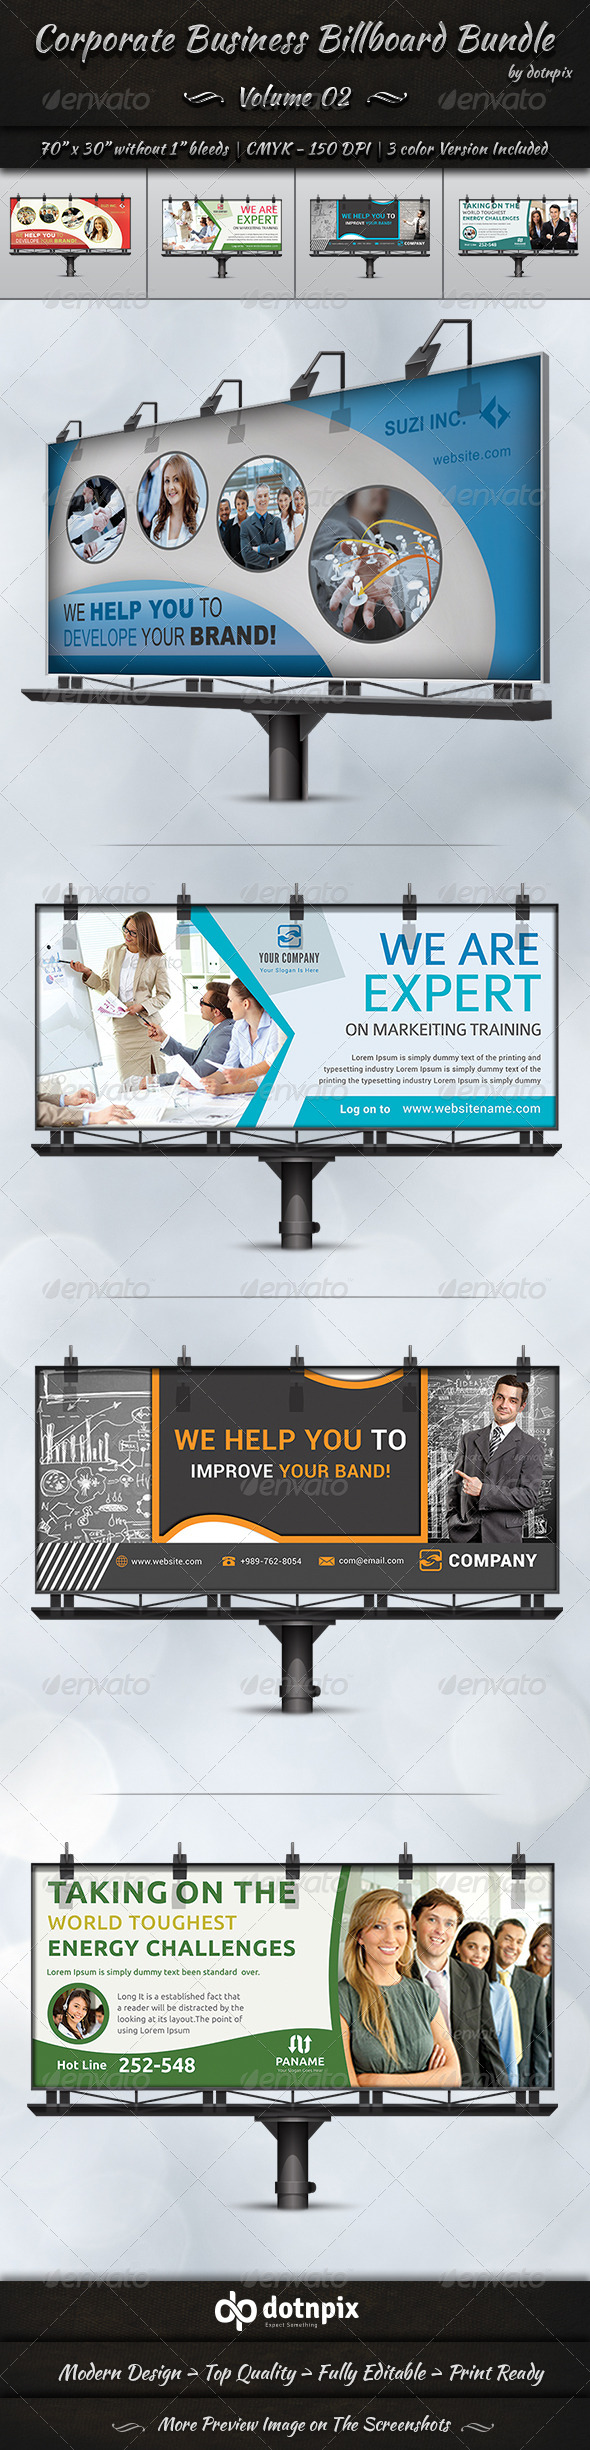 GraphicRiver Corporate Business Billboard Bundle Volume 2 8238312